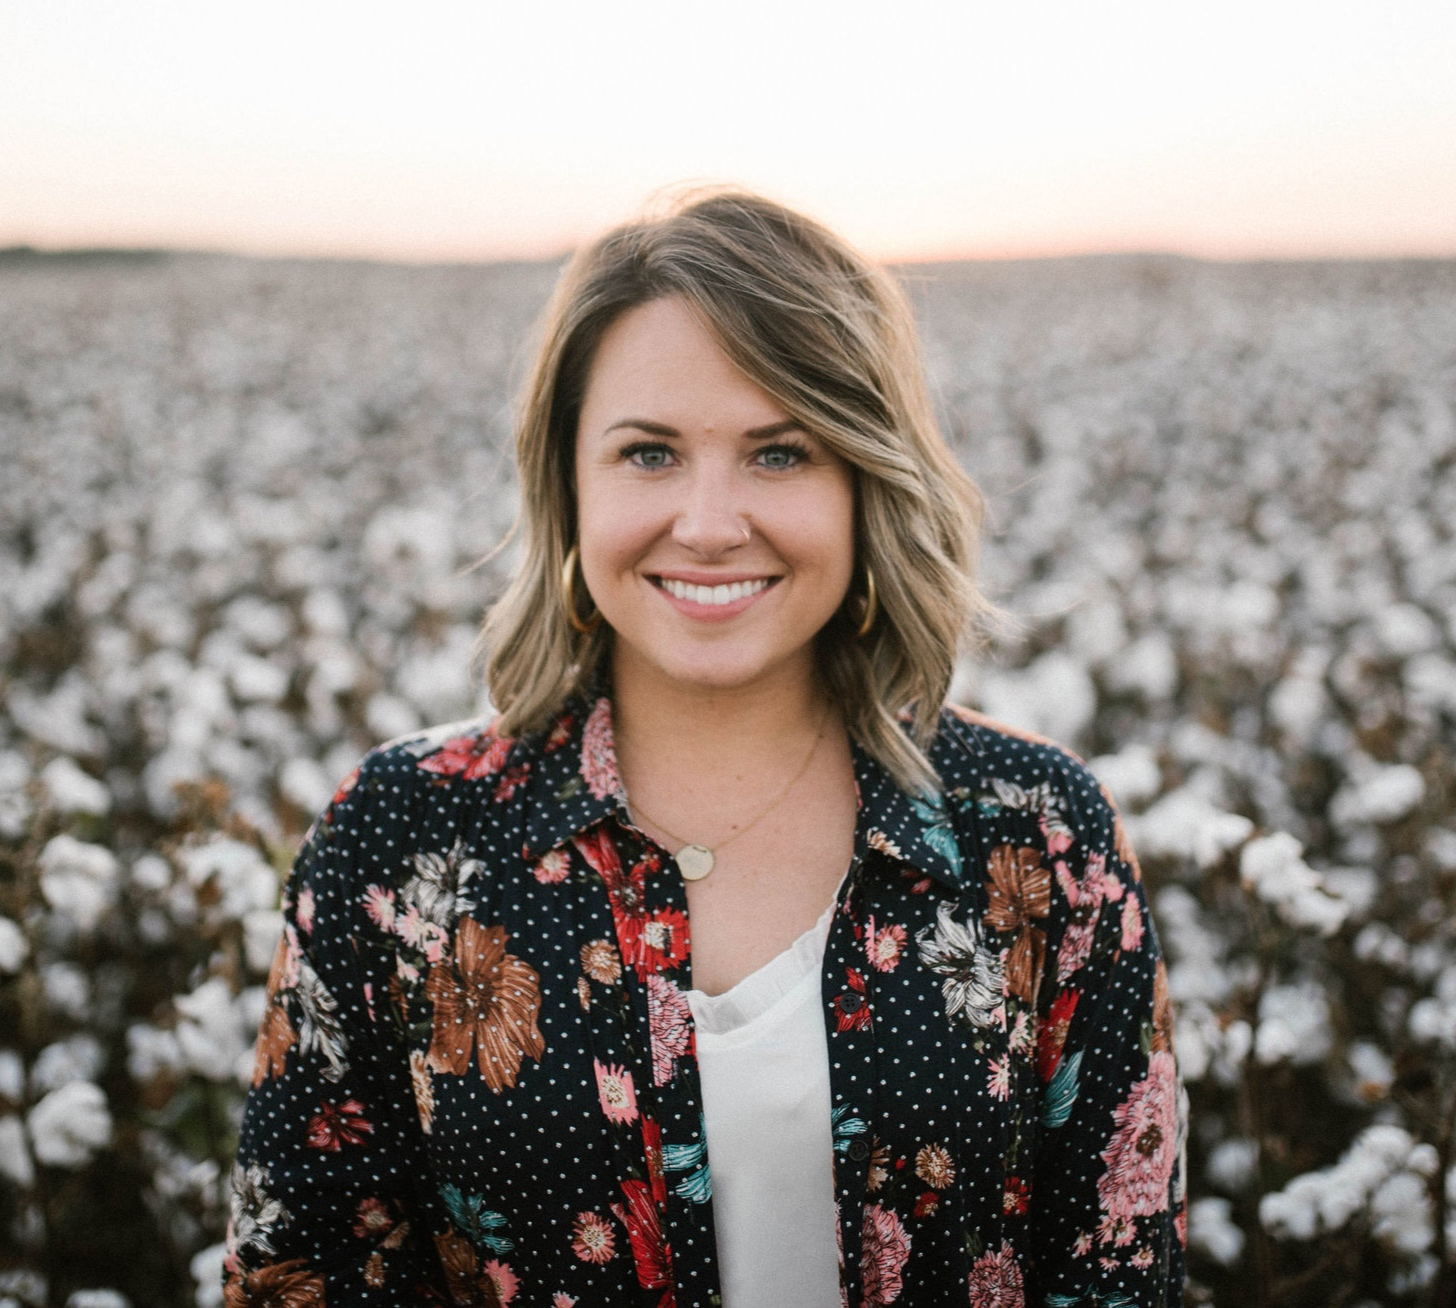 Hello, my name is Maggie. - I am a lover of Christ, Oklahoma farmer's wife + mama. freelance photographer. lifestyle blogger. livin' in a metal home on our farm. I love lifes & I love sharing mine with others! Feel free to leave a comment or follow me on social media!